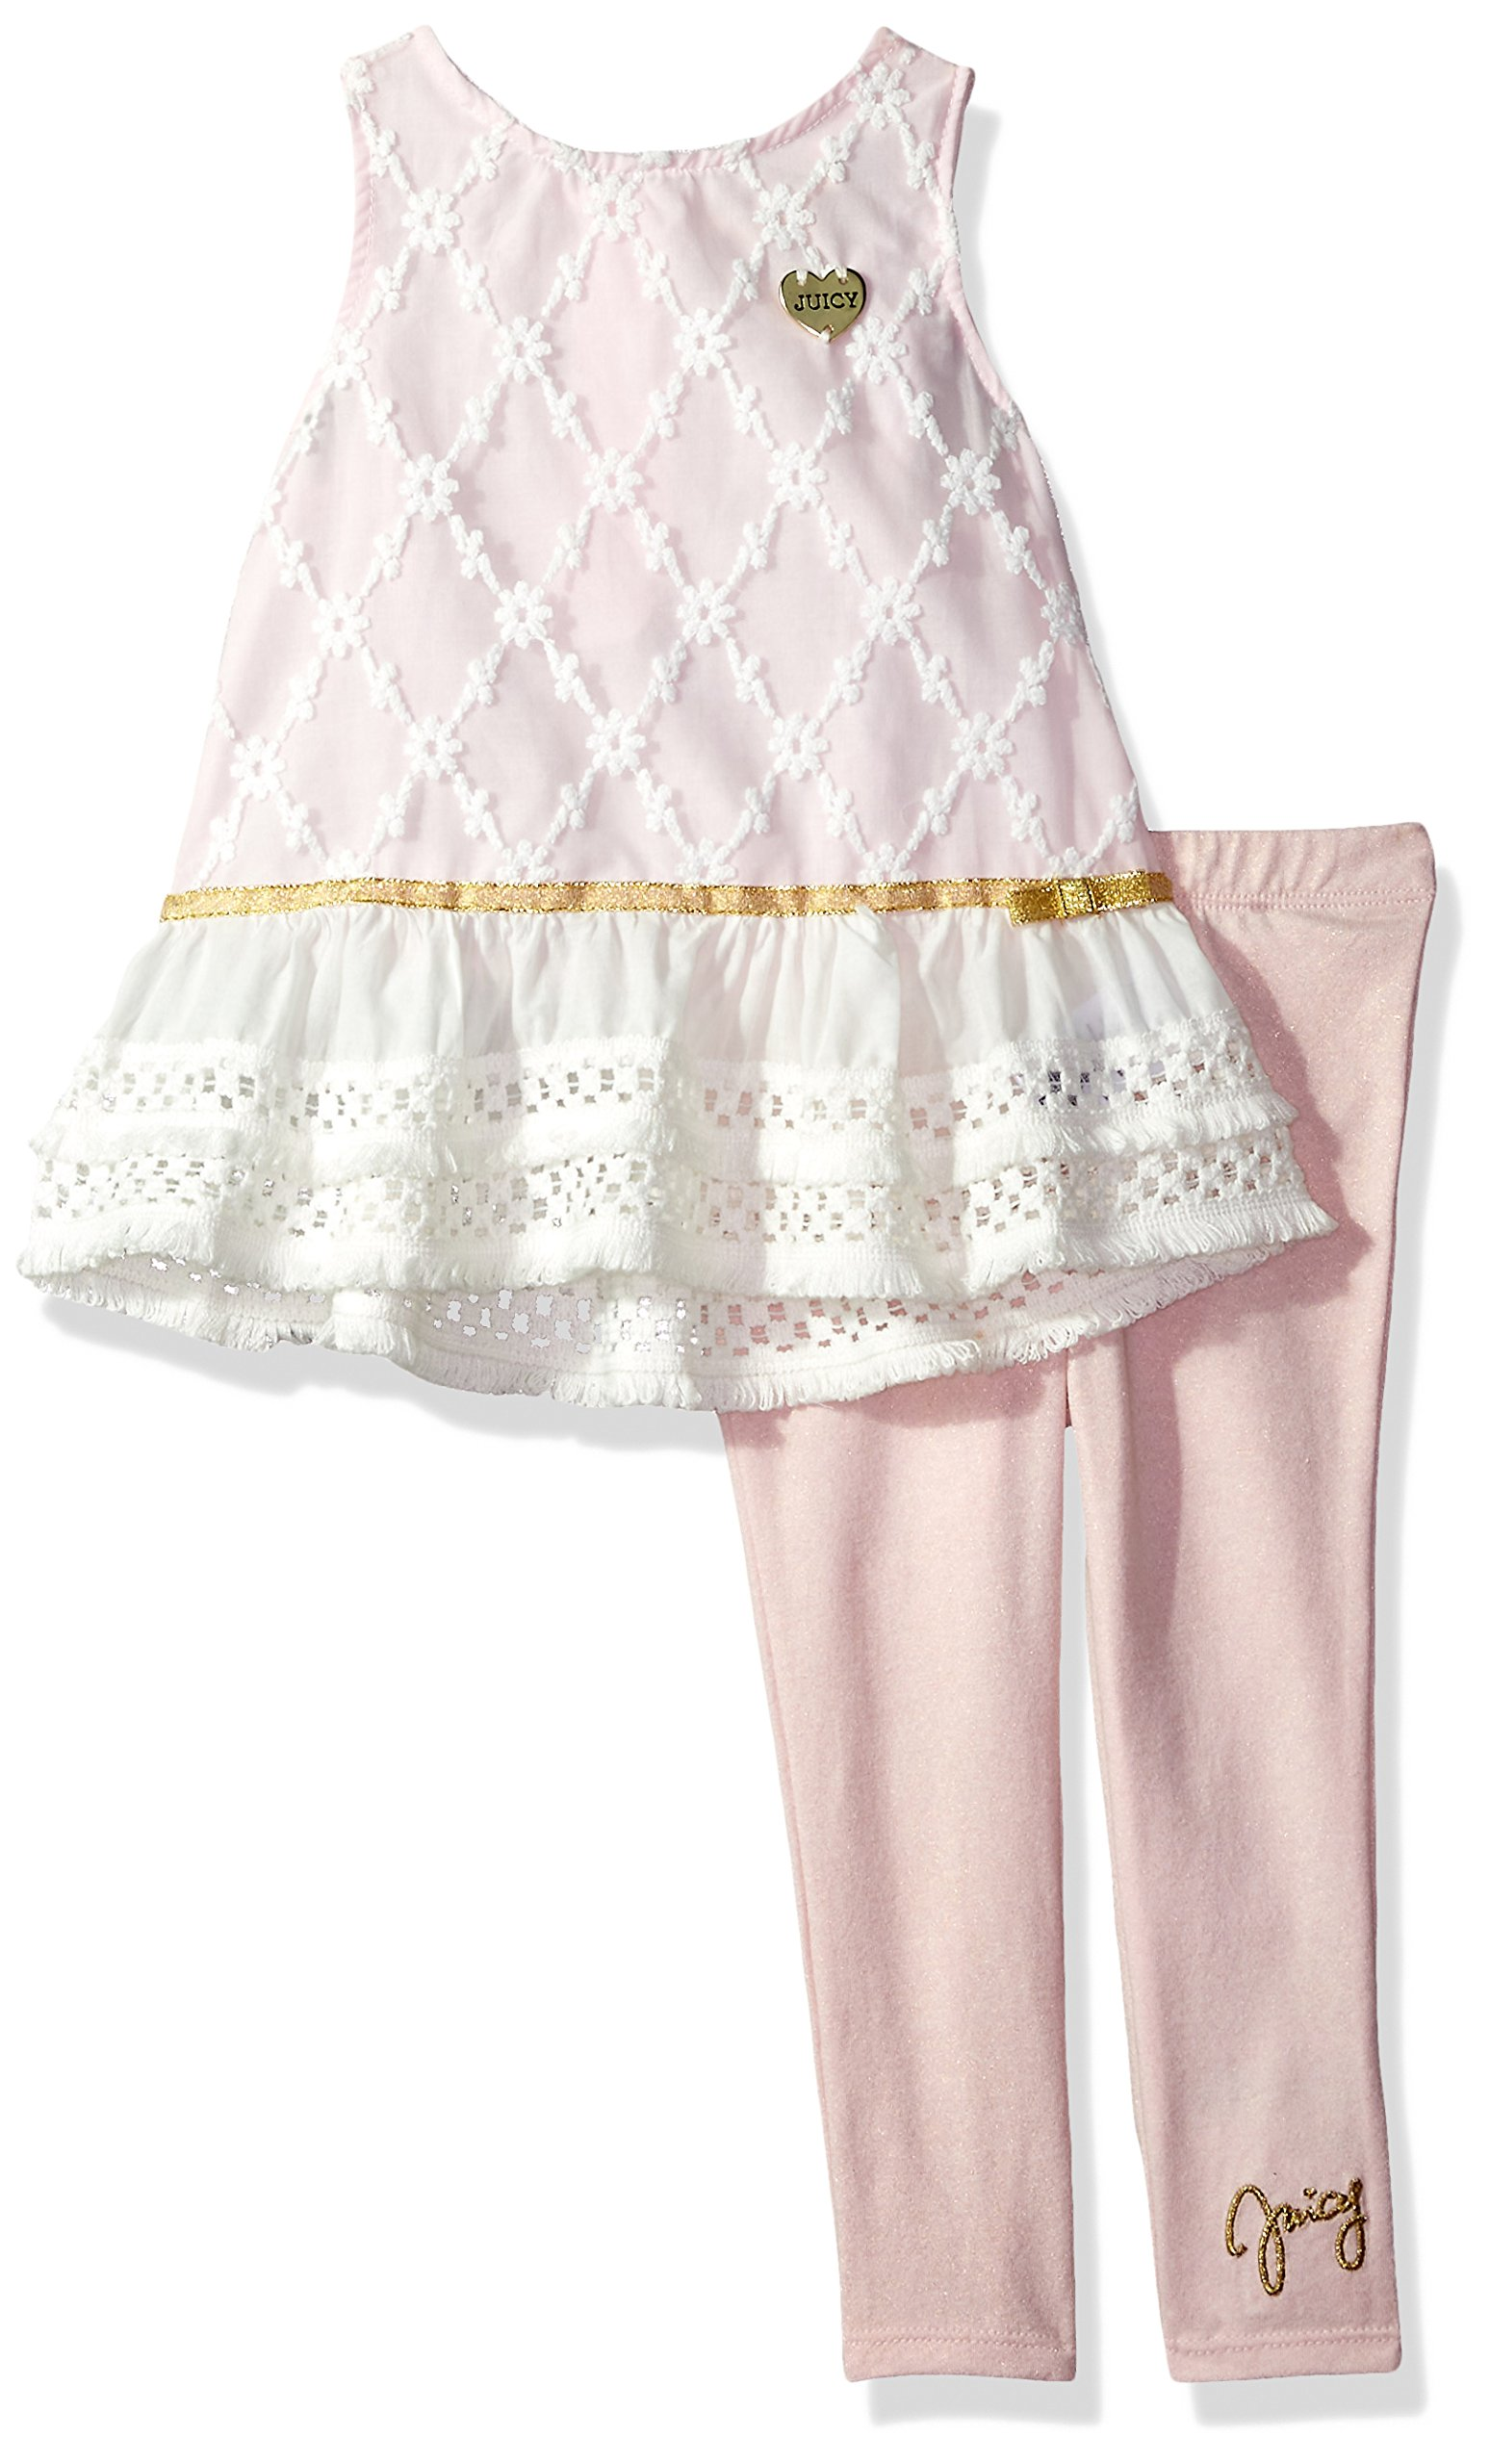 Juicy Couture Girls' Toddler 2 Pieces Tunic Set, Light Pink/Vanilla 3T